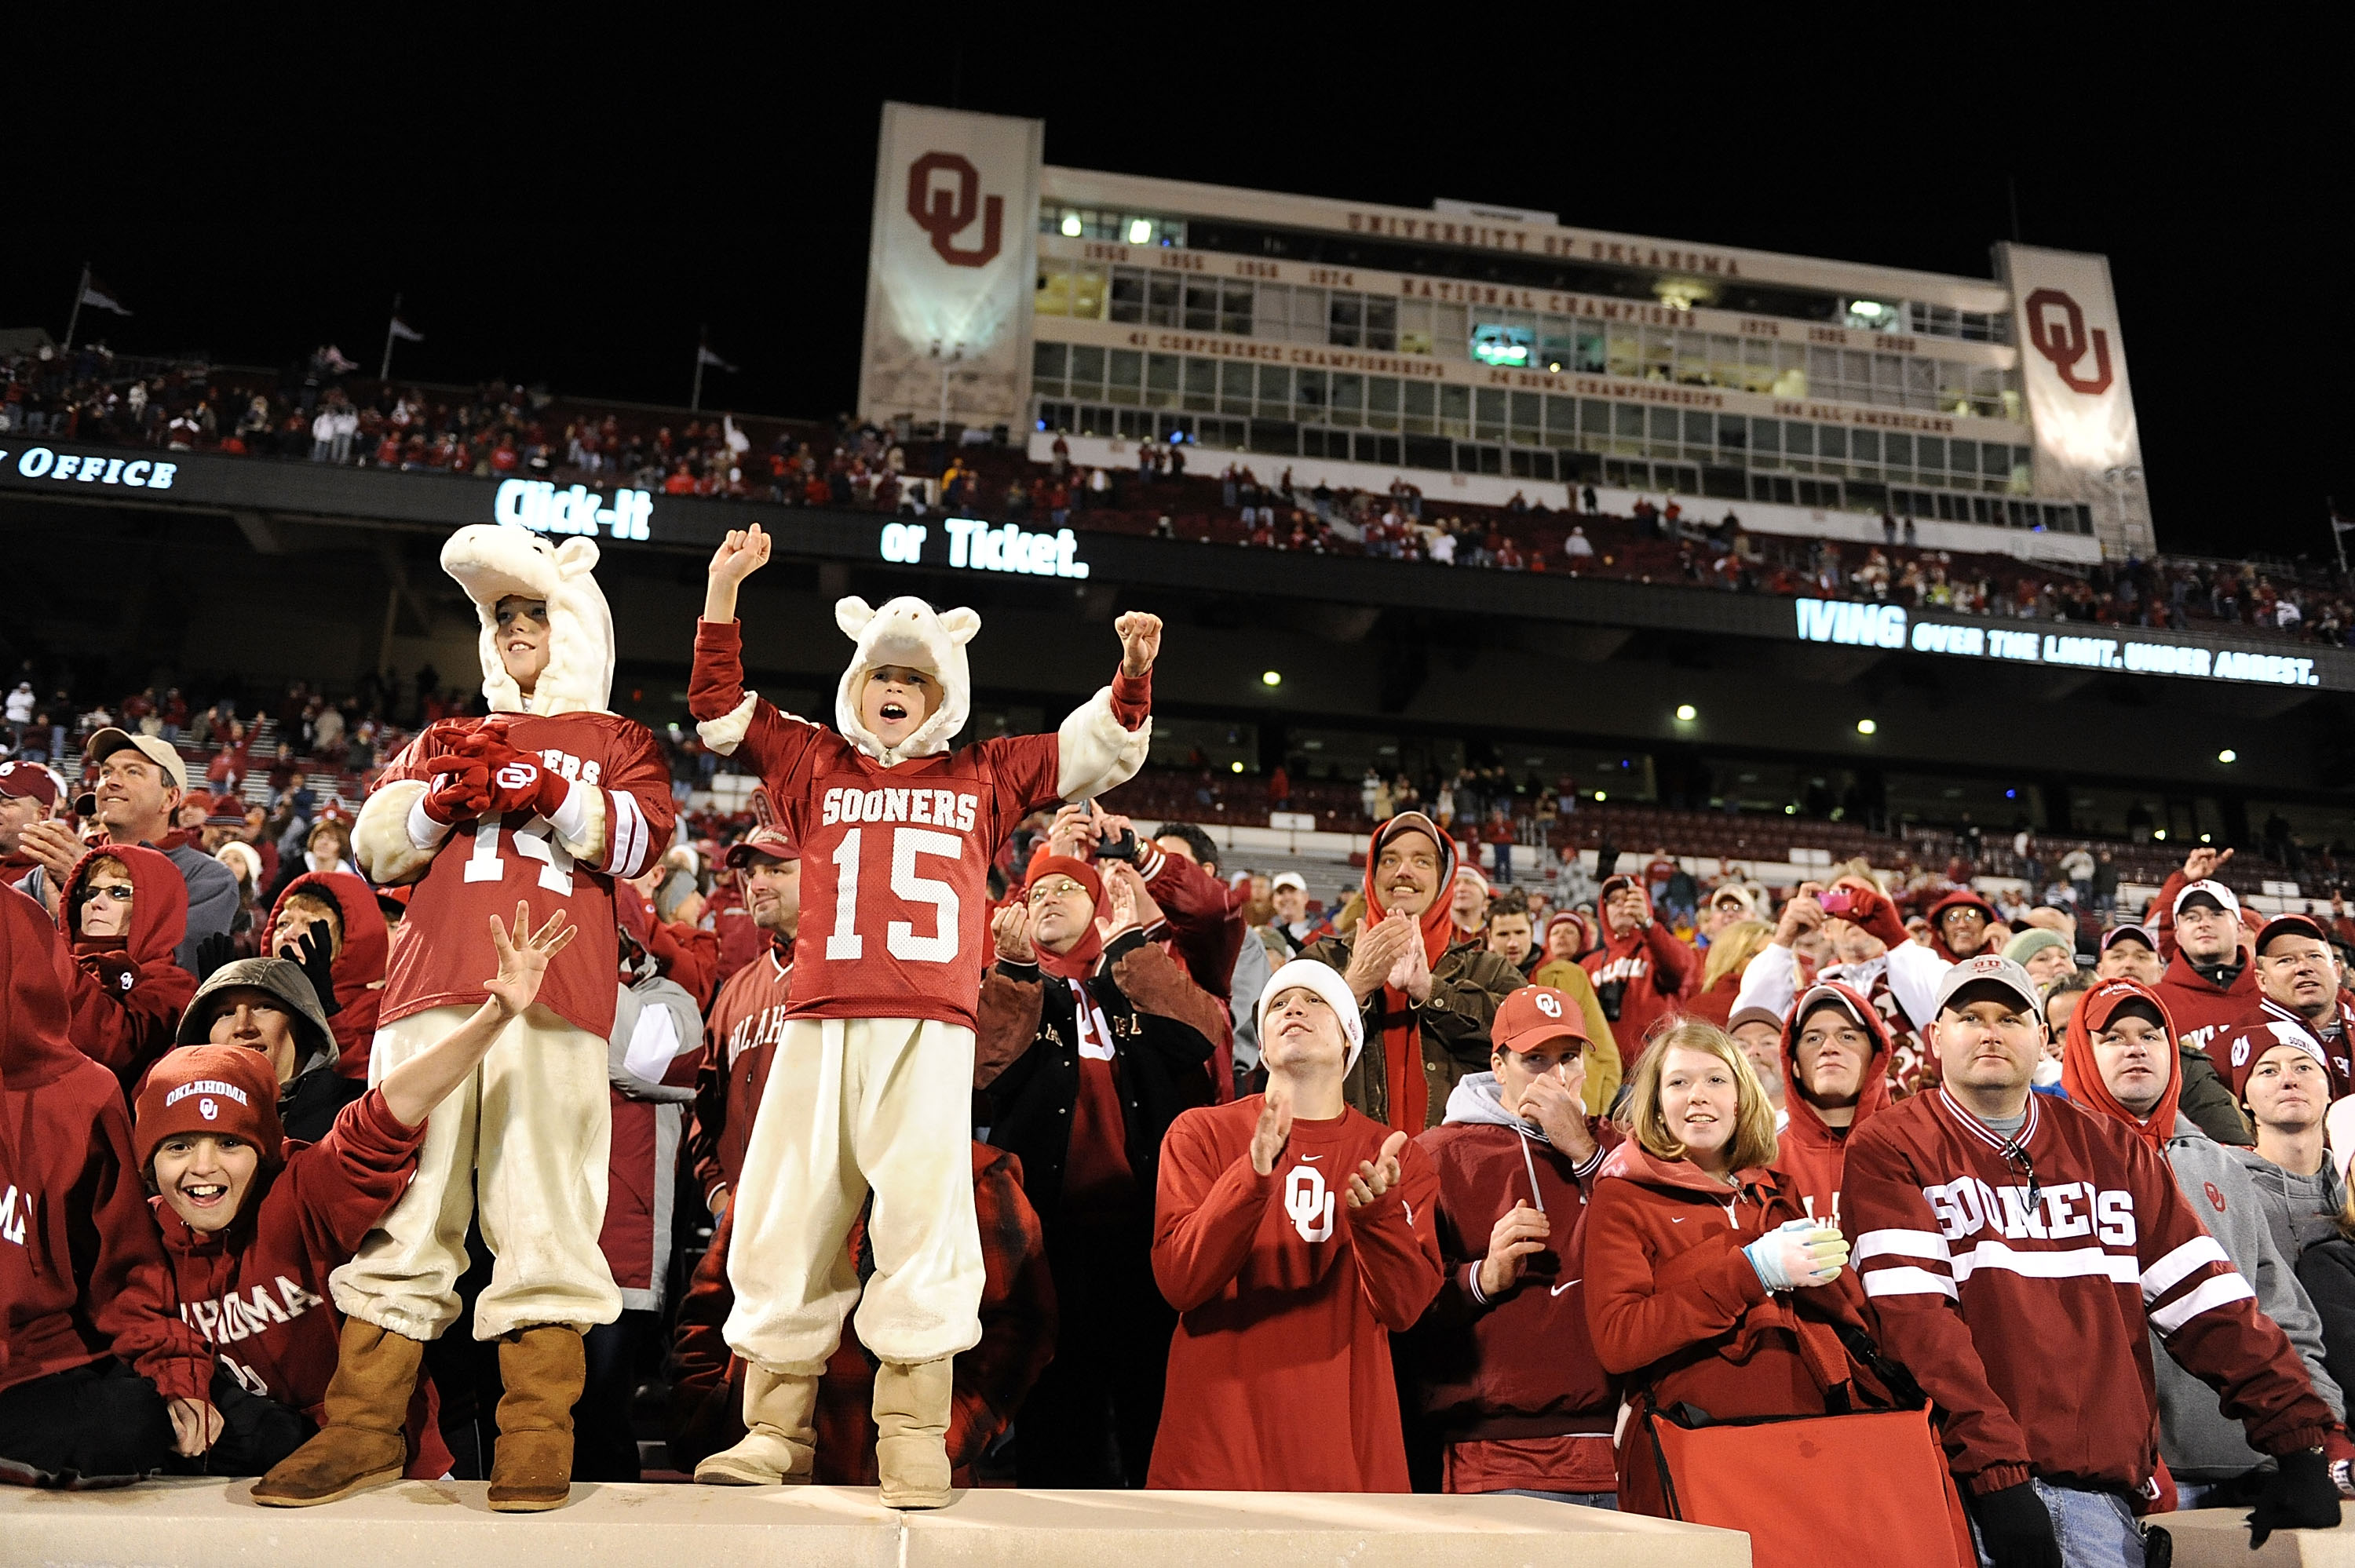 NORMAN, OK - NOVEMBER 22:  Fans of the Oklahoma Sooners celebrate a 65-21 win against the Texas Tech Red Raiders at Memorial Stadium on November 22, 2008 in Norman, Oklahoma.  (Photo by Ronald Martinez/Getty Images)